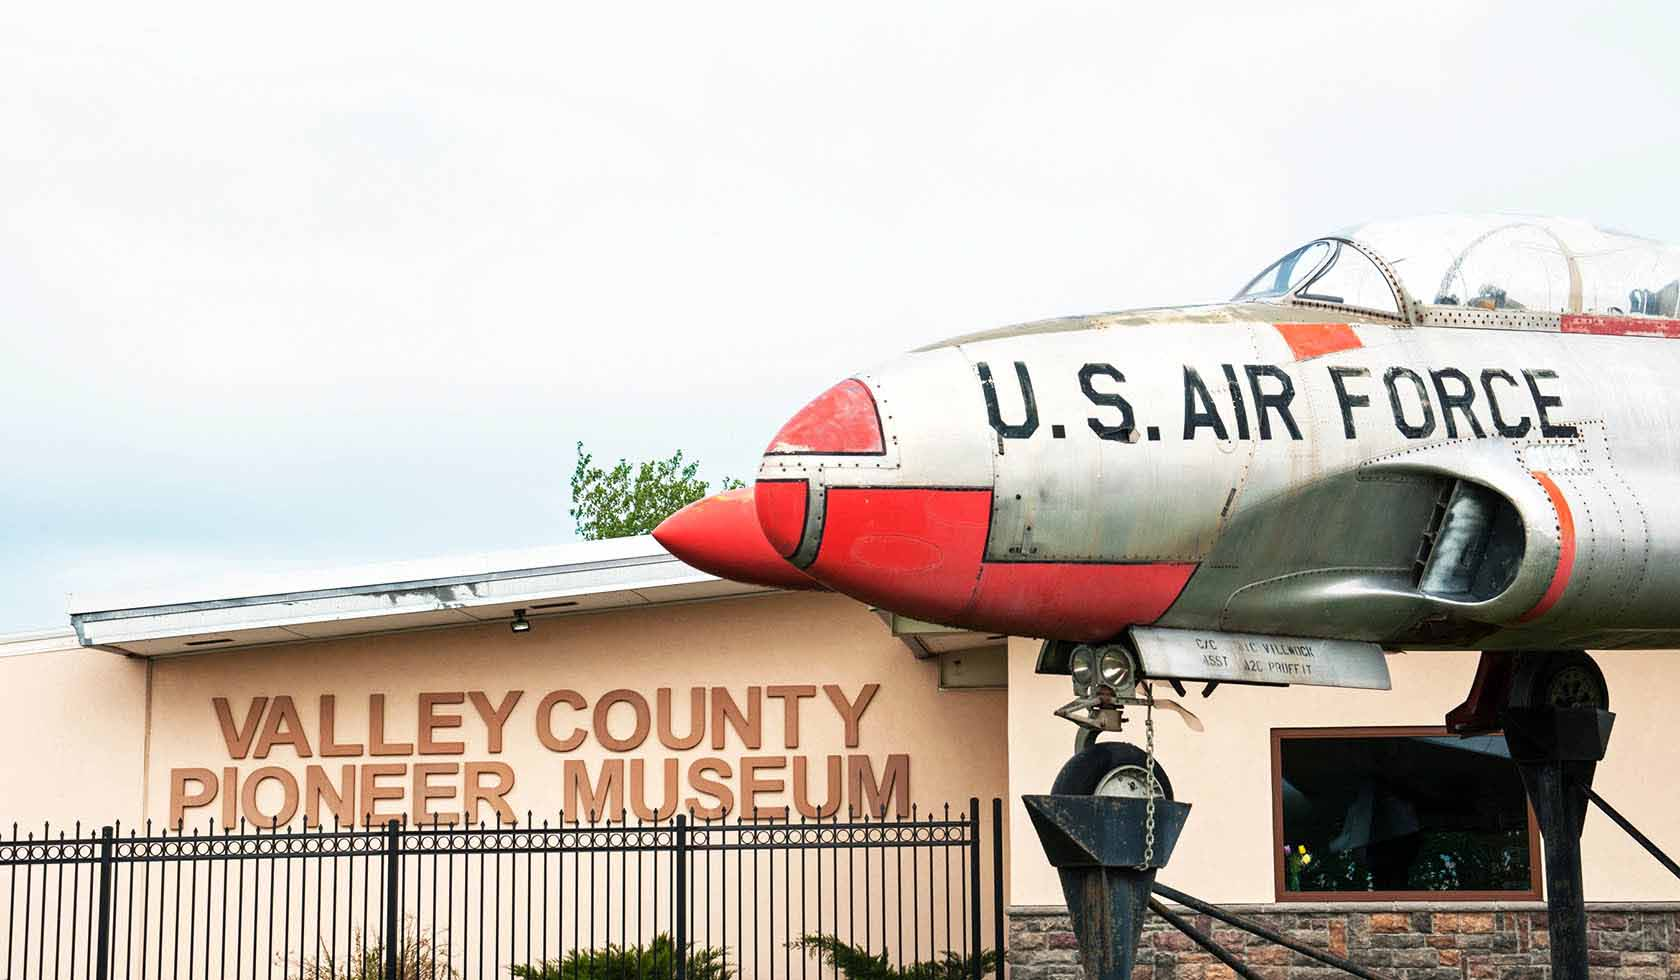 Valley County Pioneer Museum | Missouri River Country